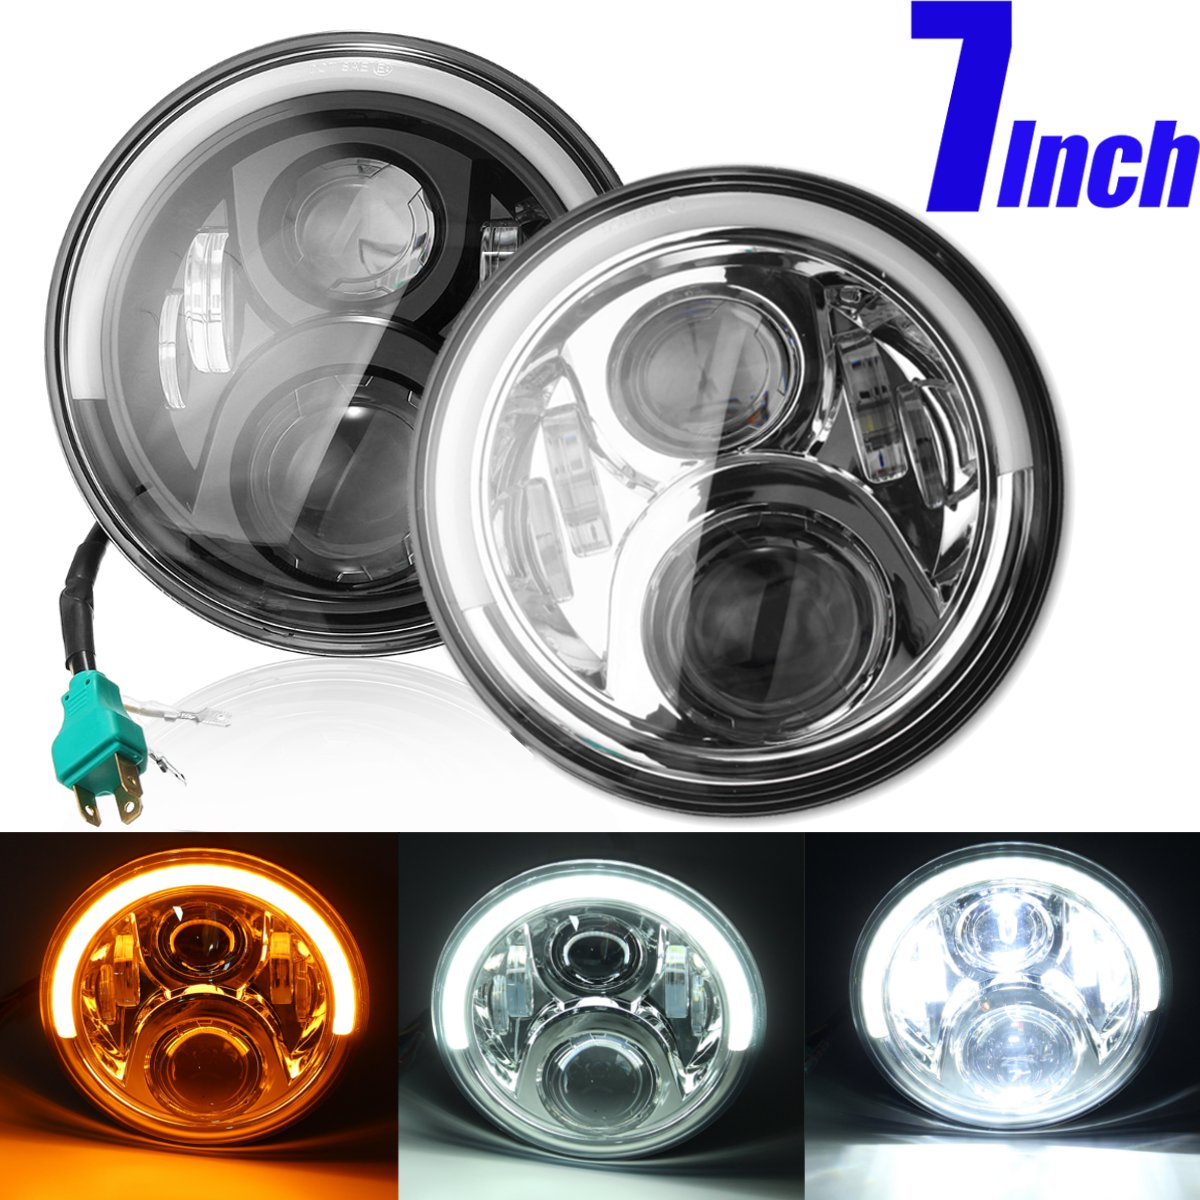 7inch Led Motorcycle Headlight for Harley with Halo Angel Eye DRL Lights For Harely for JEEP for BENZ G for LAND ROVER defender7inch Led Motorcycle Headlight for Harley with Halo Angel Eye DRL Lights For Harely for JEEP for BENZ G for LAND ROVER defender